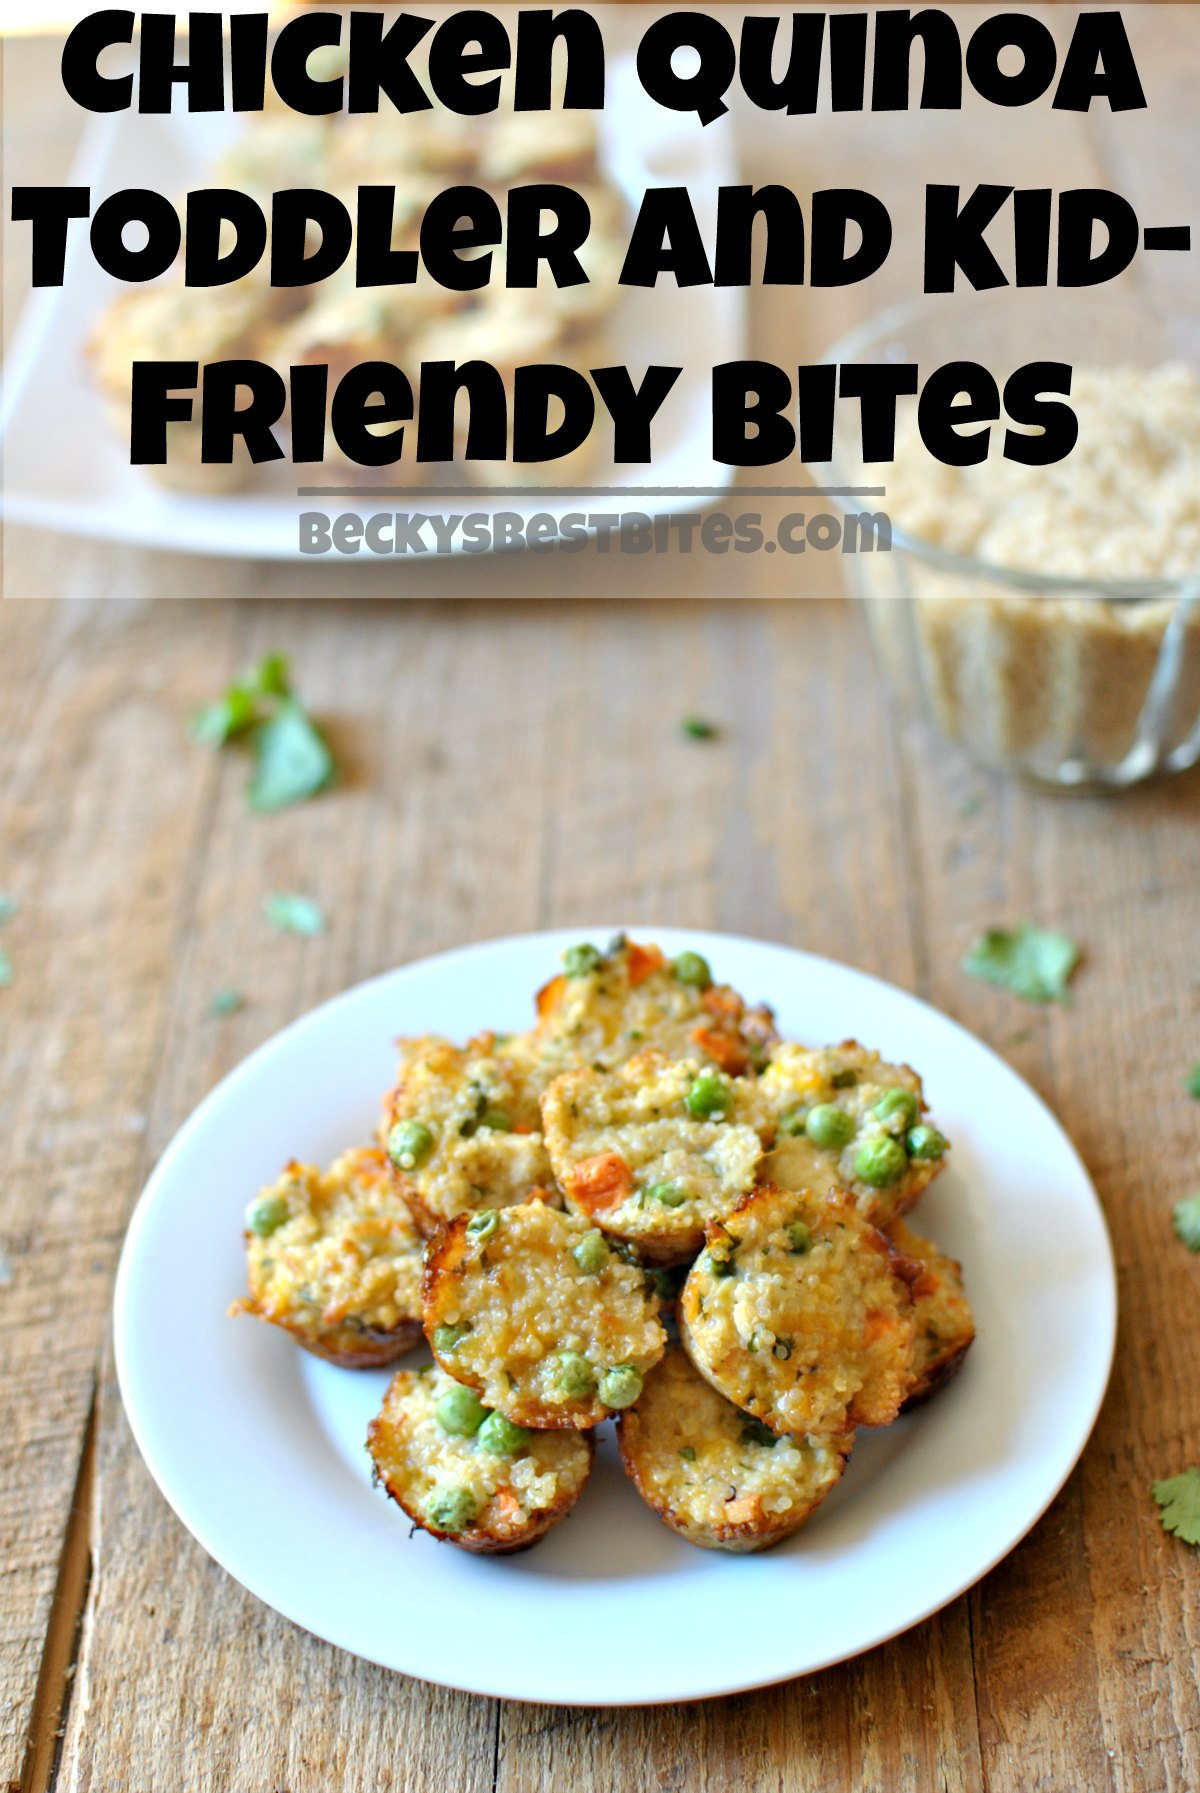 Chicken Quinoa Toddler and Kid-Friendly Bites are protein and vegetable packed portable nibbles that toddlers and kids will love and parents will enjoy too! beckysbestbites.com #kidfriendly #freezerfriendly #healthyrecipe #toddler #quinoa